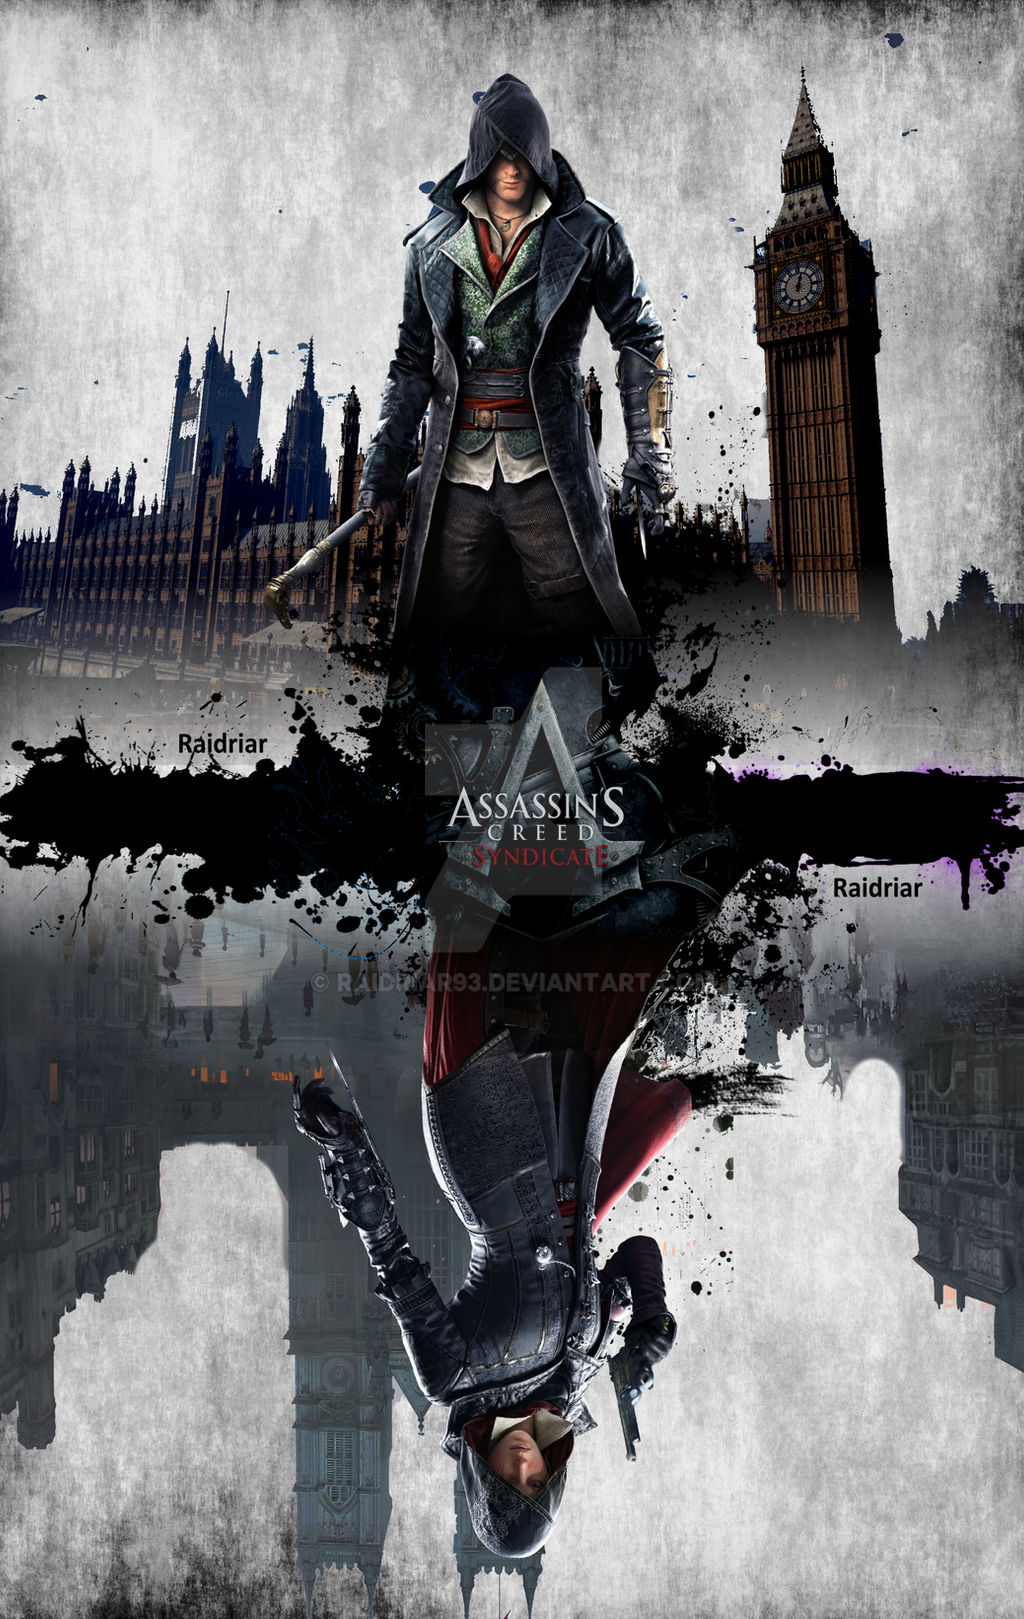 Assassin S Creed Syndicate Wallpaper By Raidriar93 On Deviantart